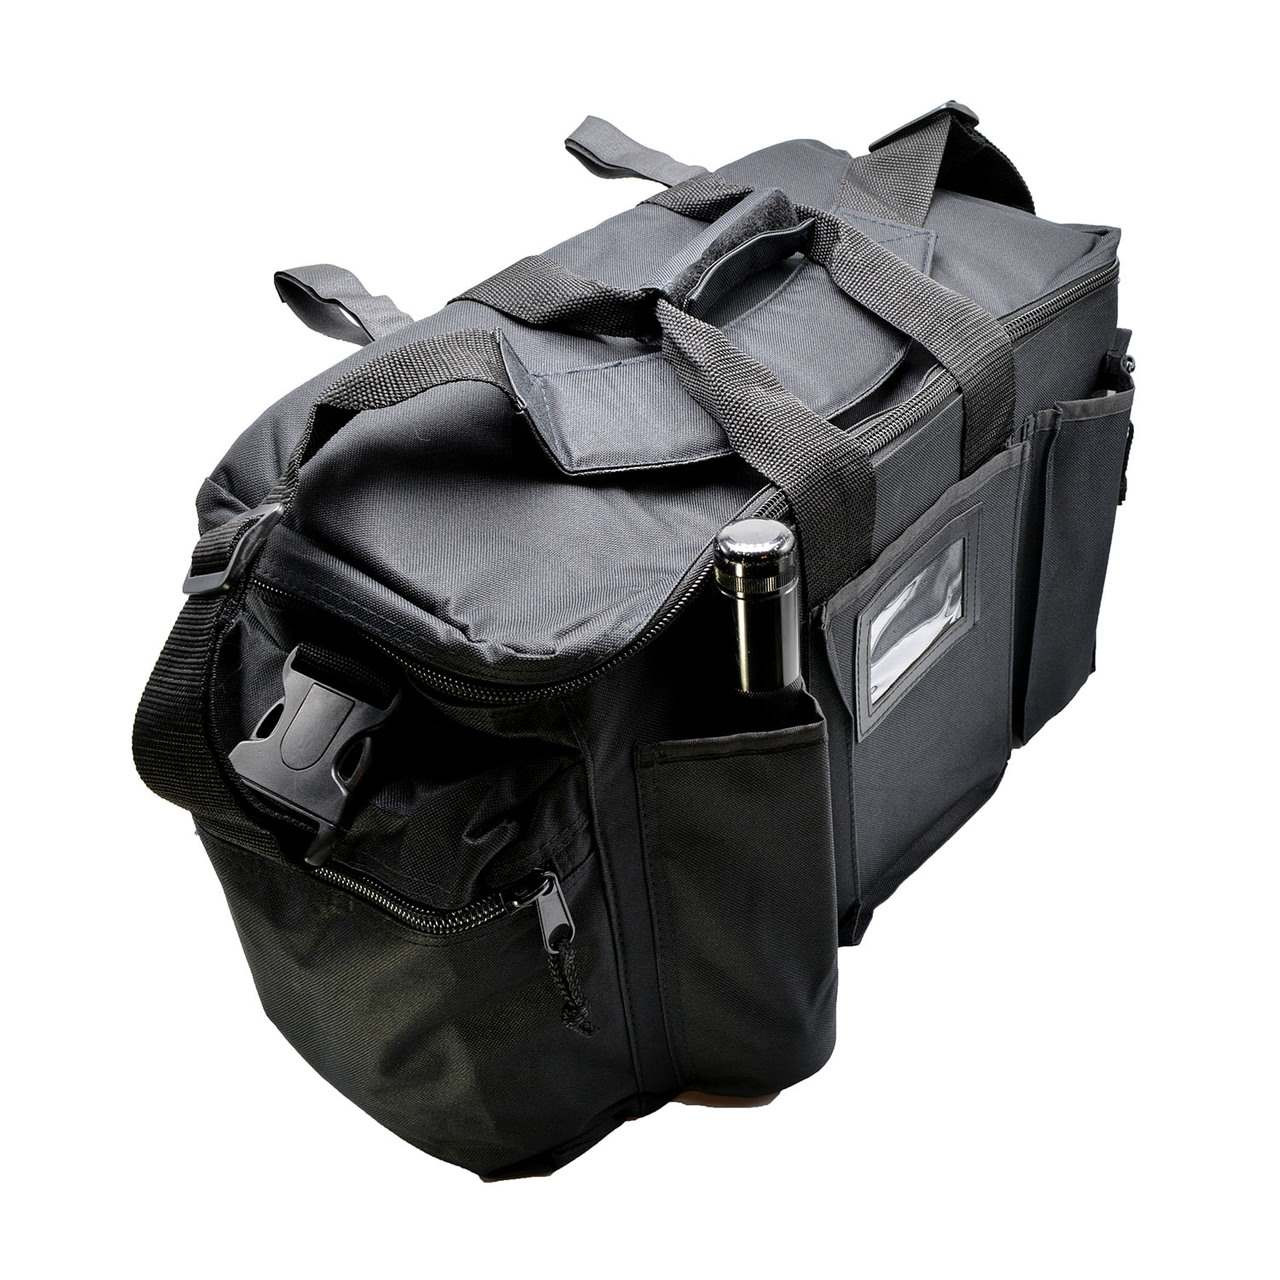 Perfect Fit Nylon Police Duty Gear Bag